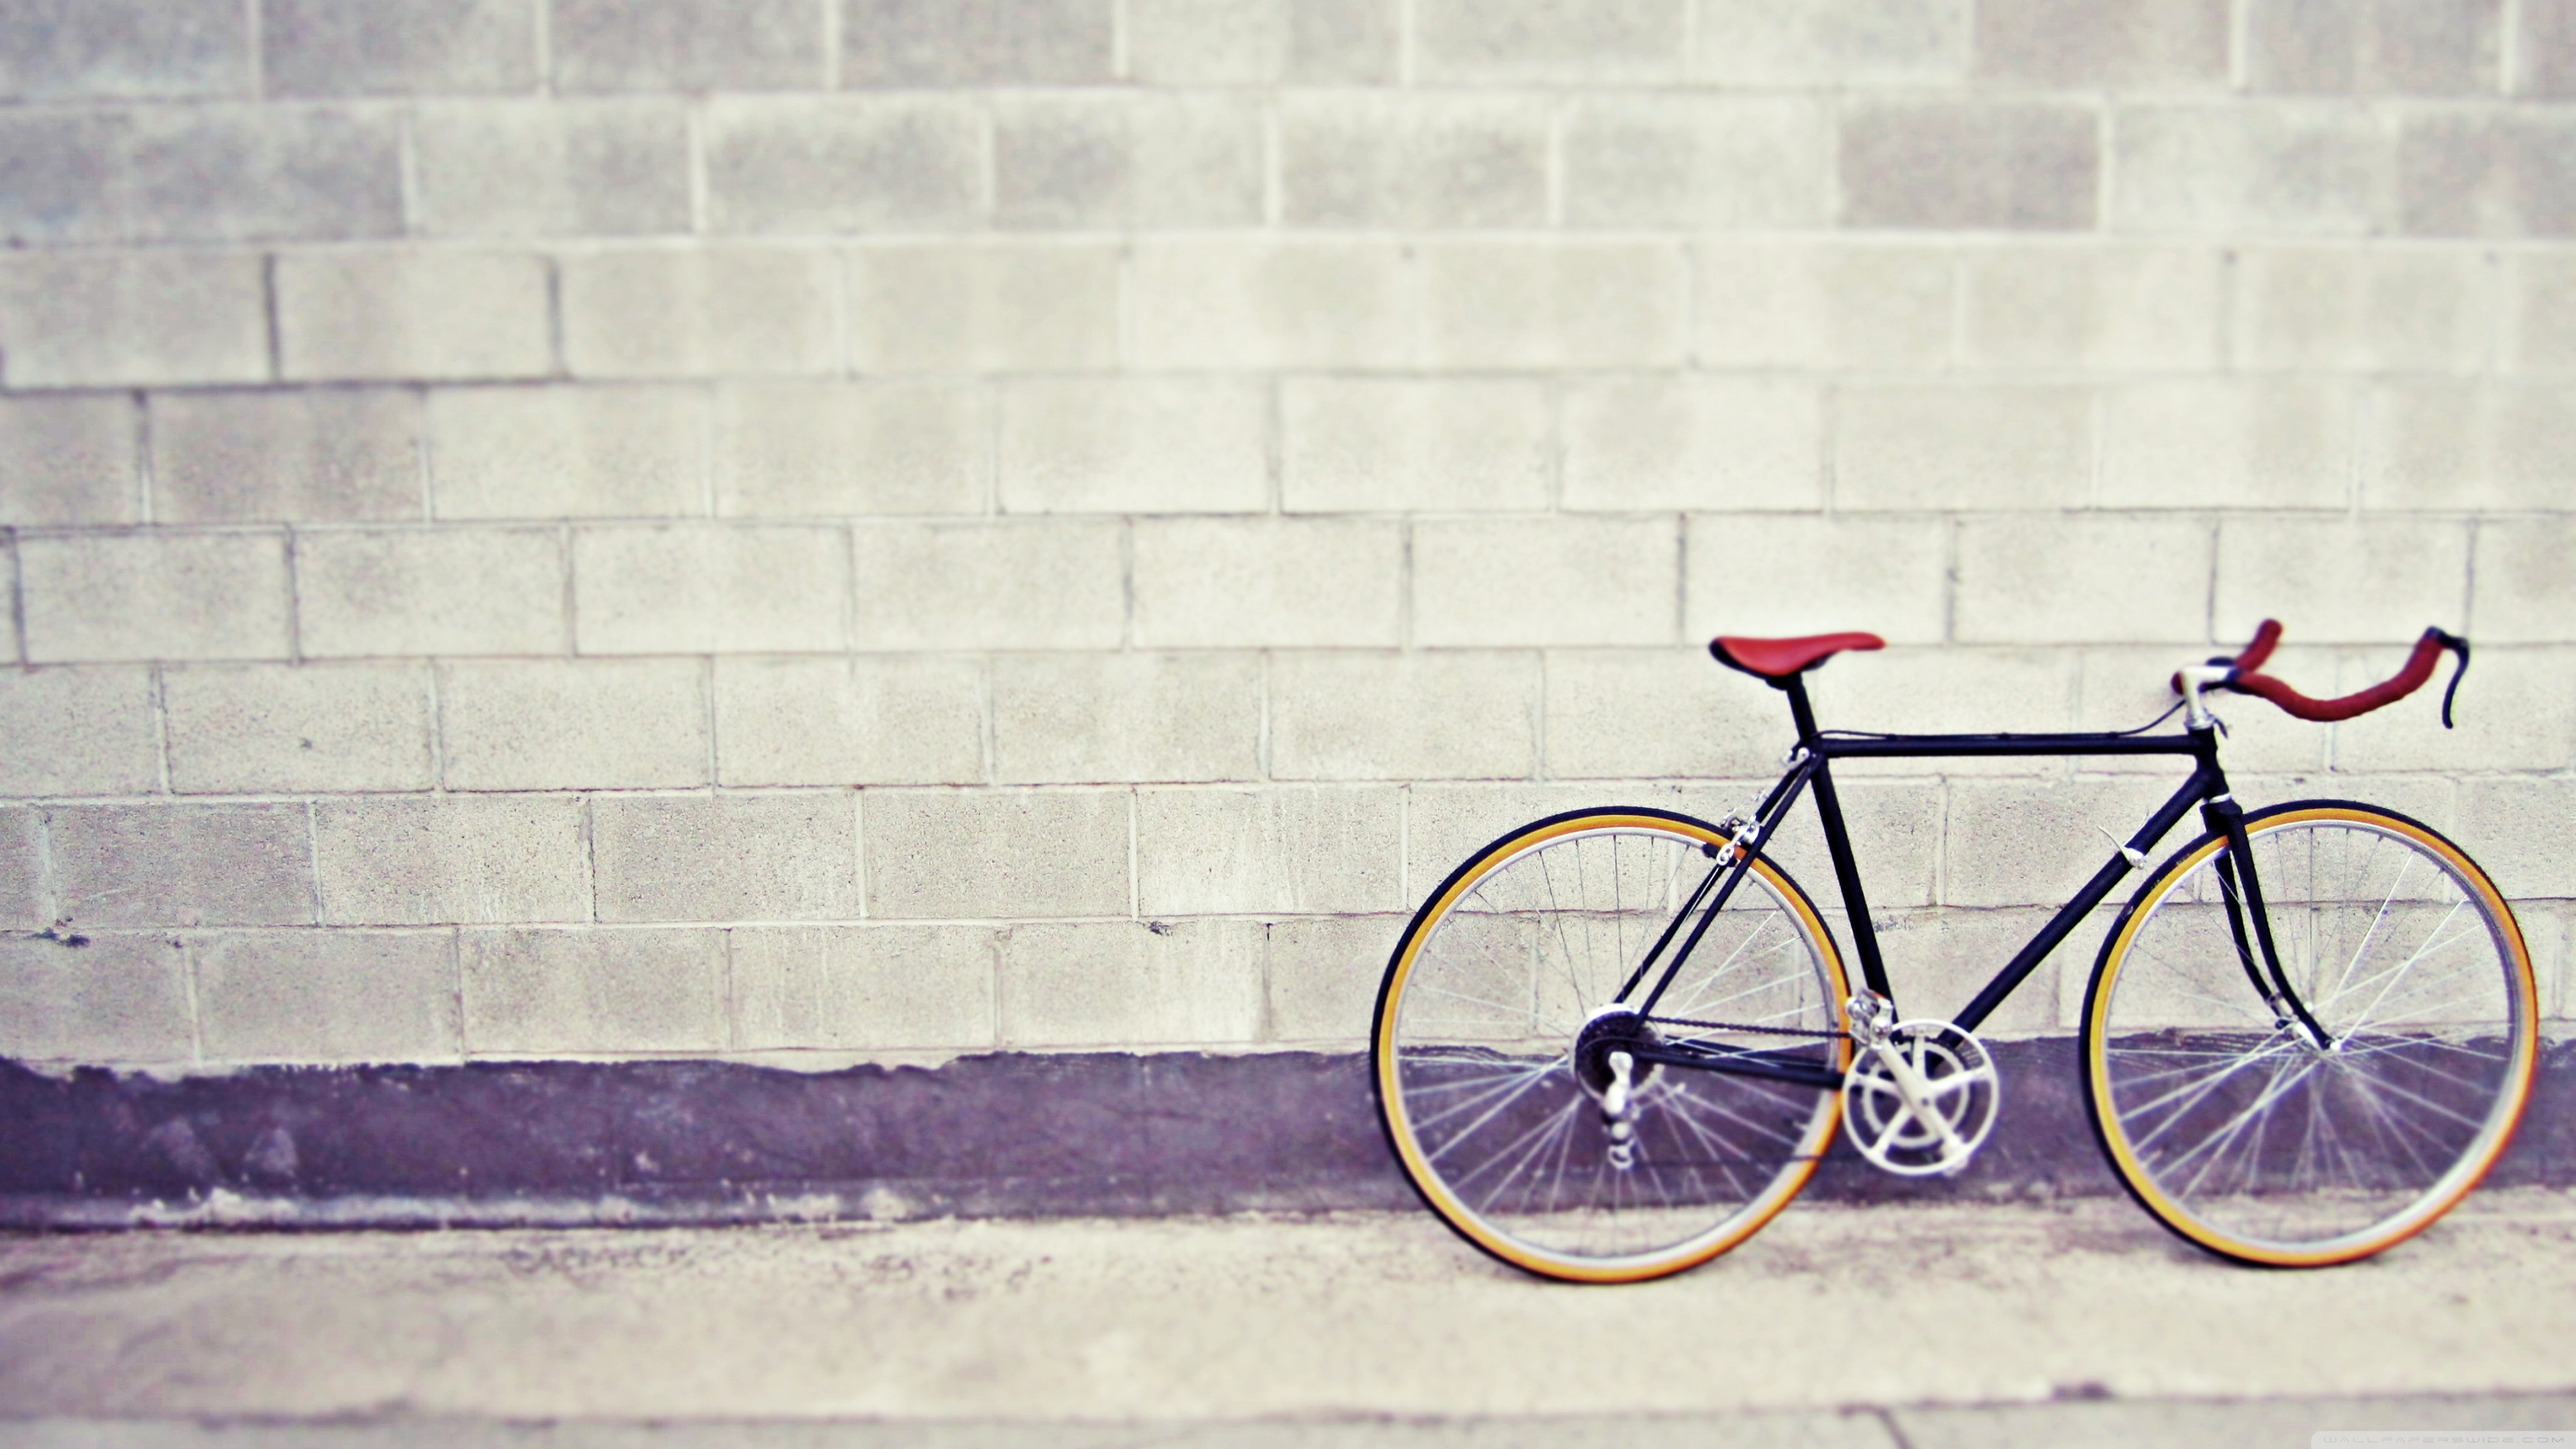 Bicycle Wallpaper HD